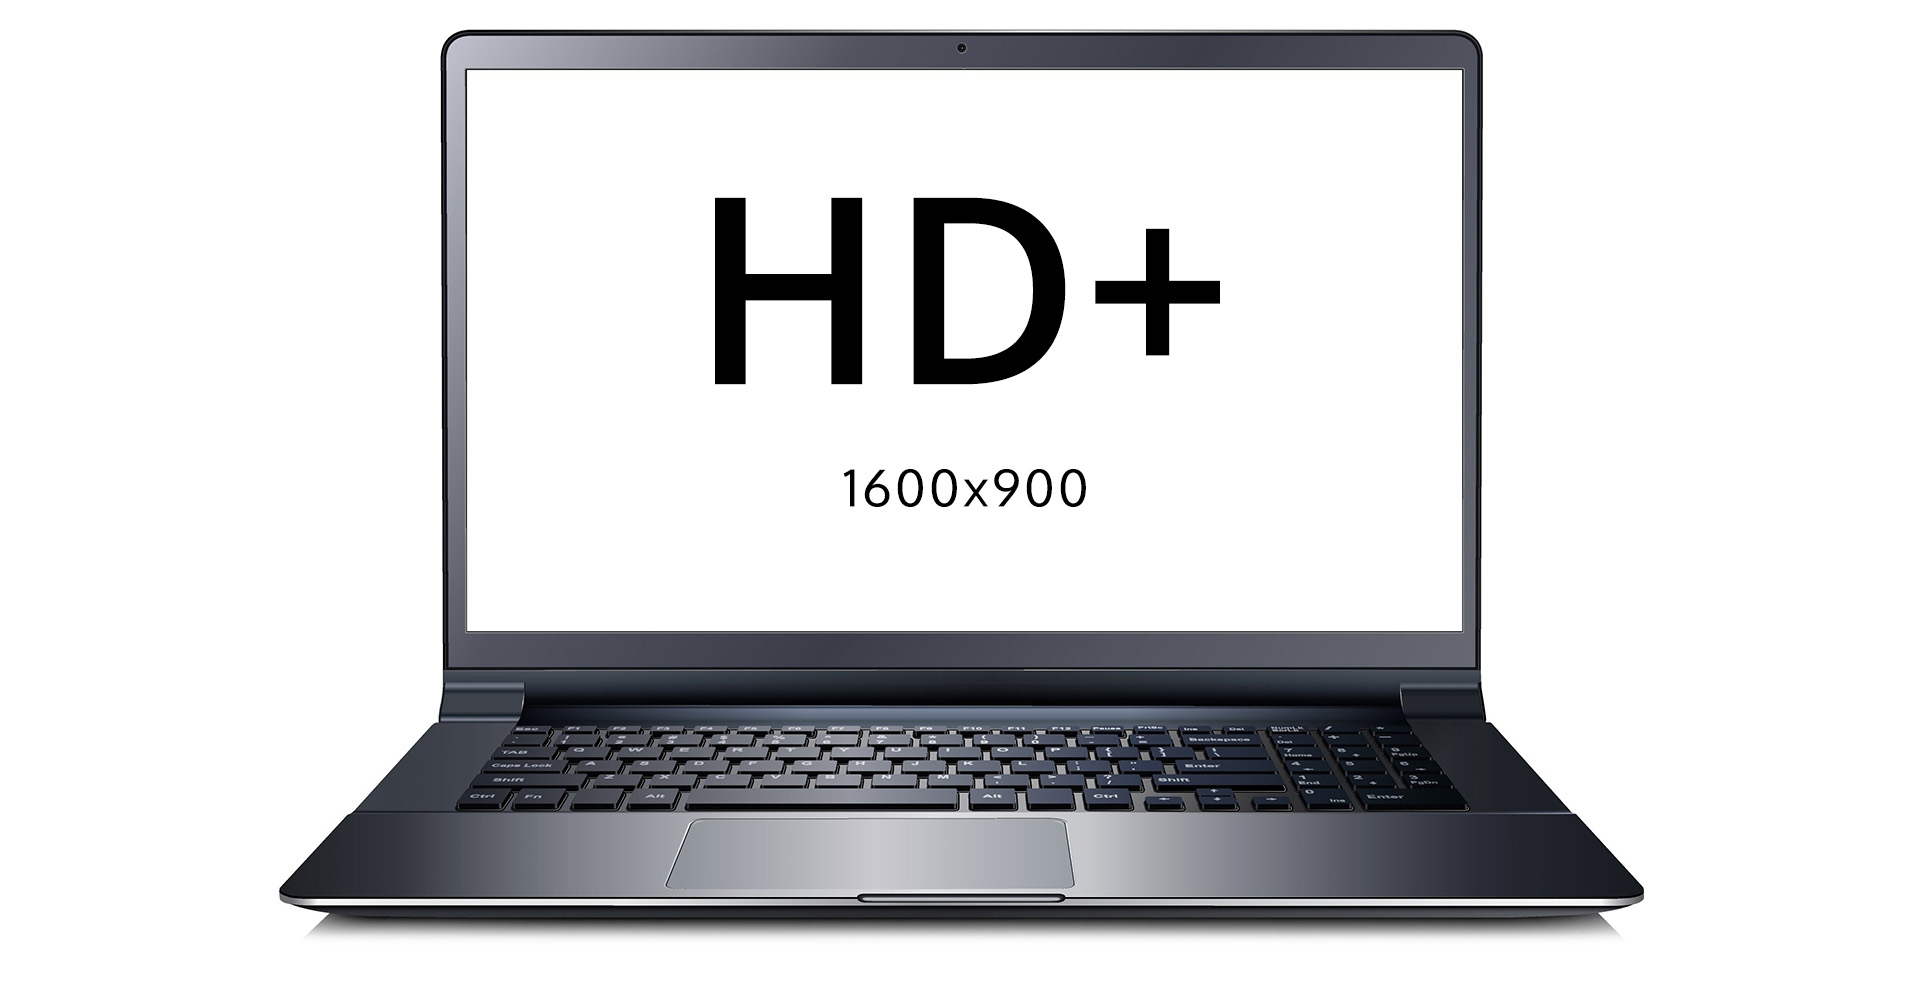 Acer Aspire HD N4020/4GB/1TB/DVD-RW/Win 10 Pro                             HD+ 1600x900 resolutsioon